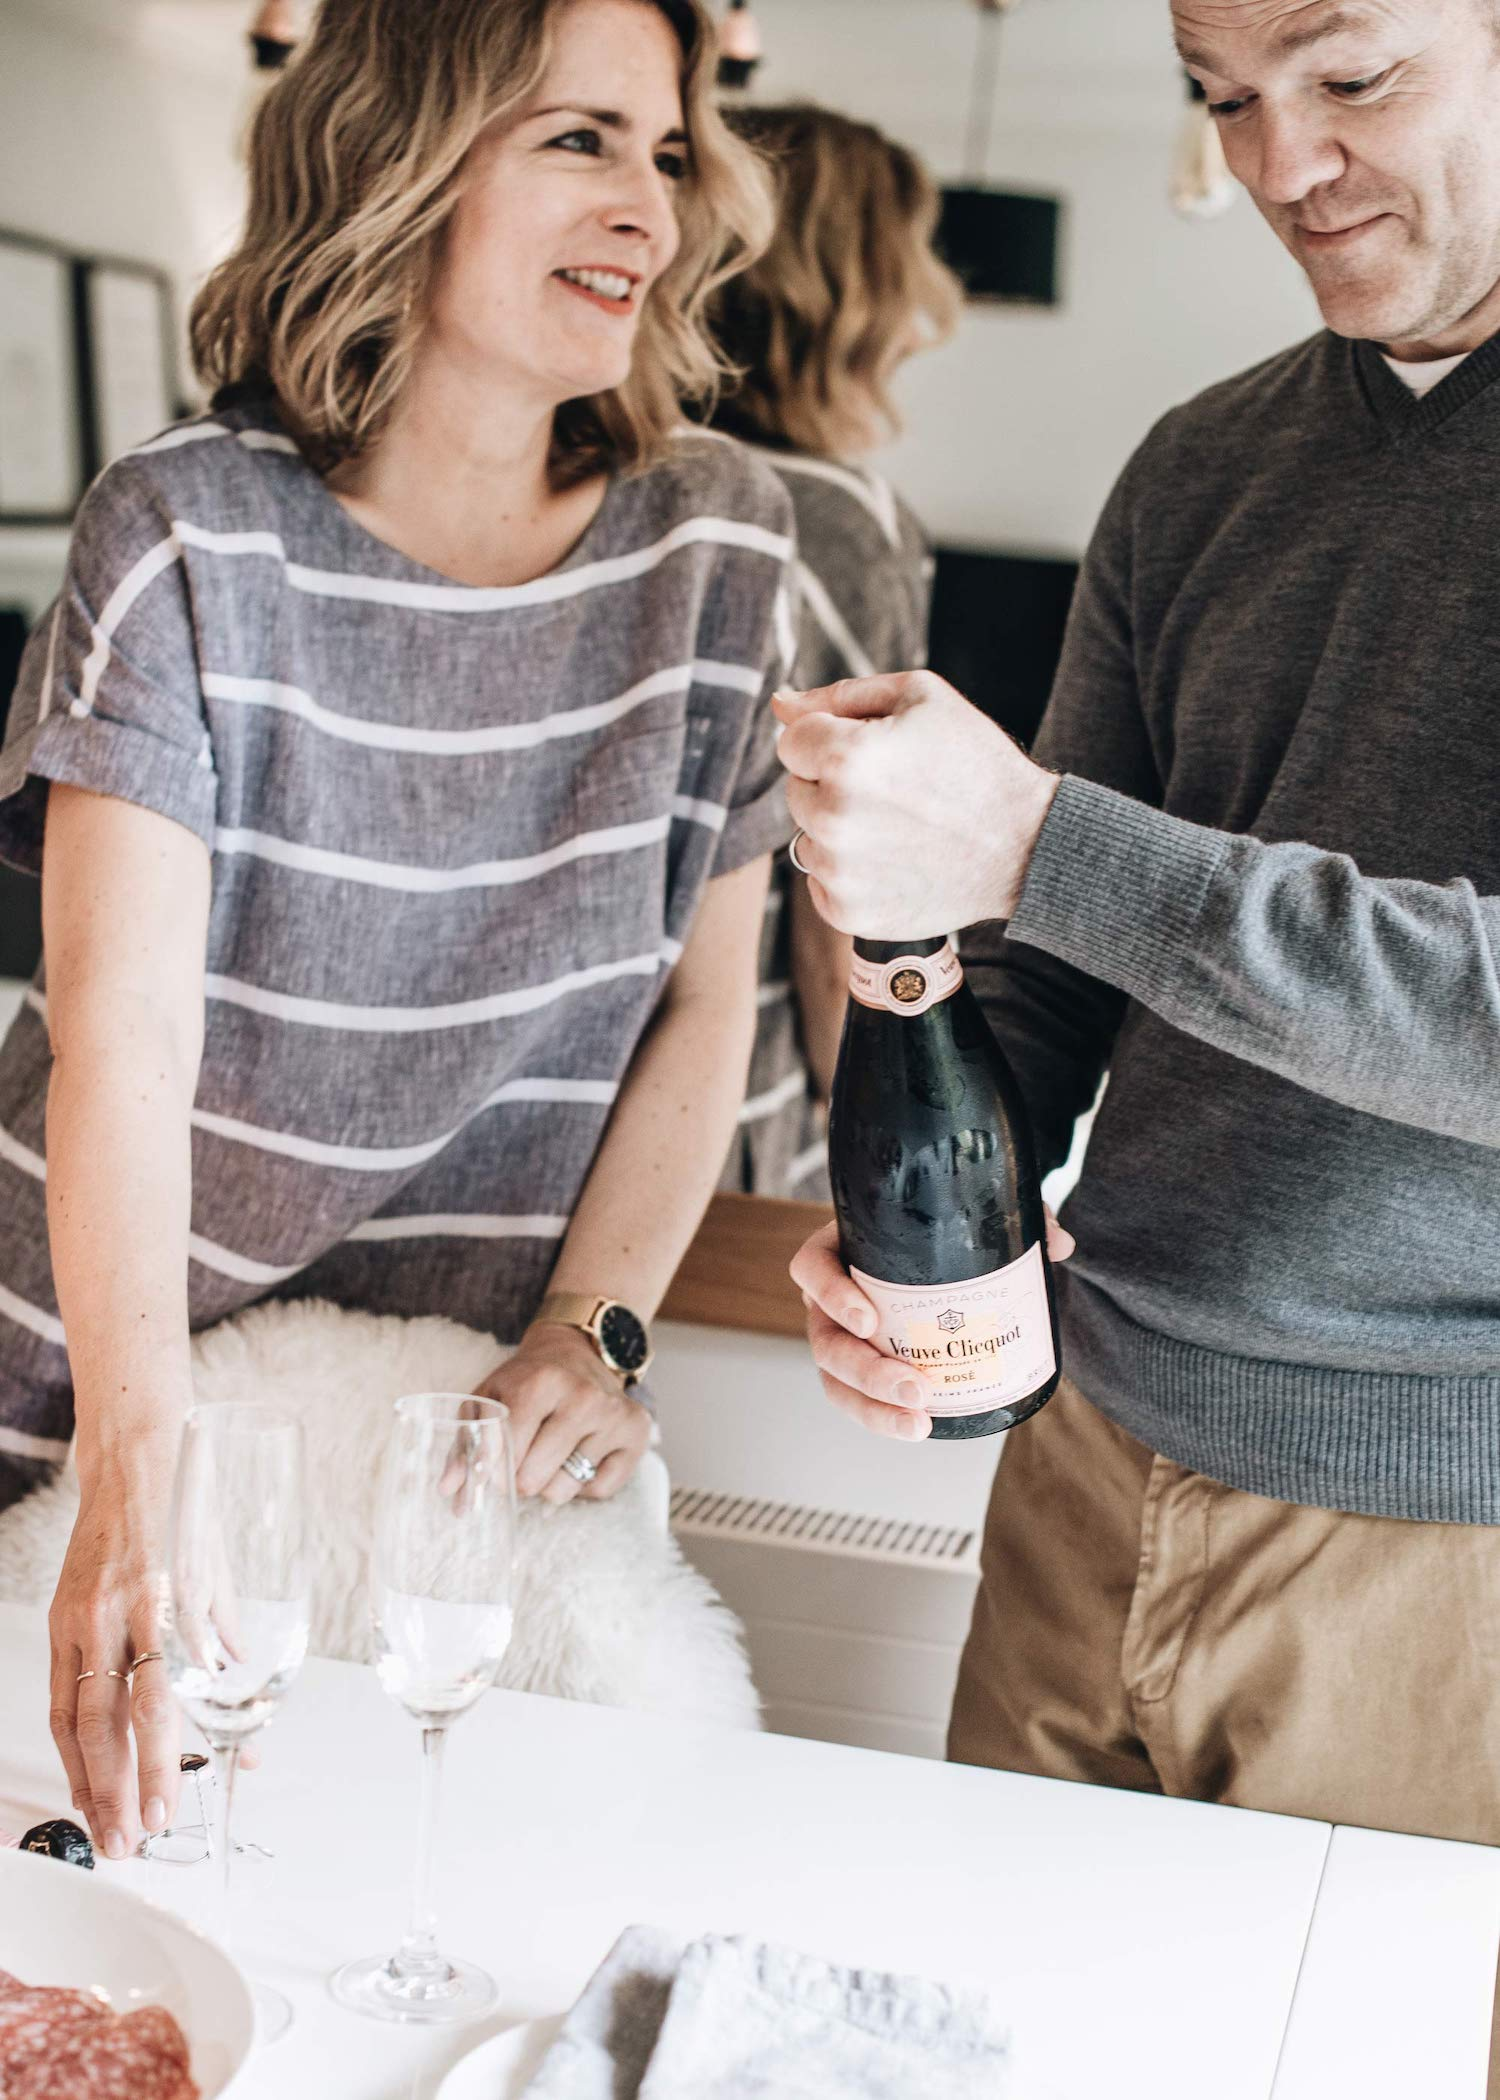 6 Patrick-opening-a-bottle-of-champagne.jpg